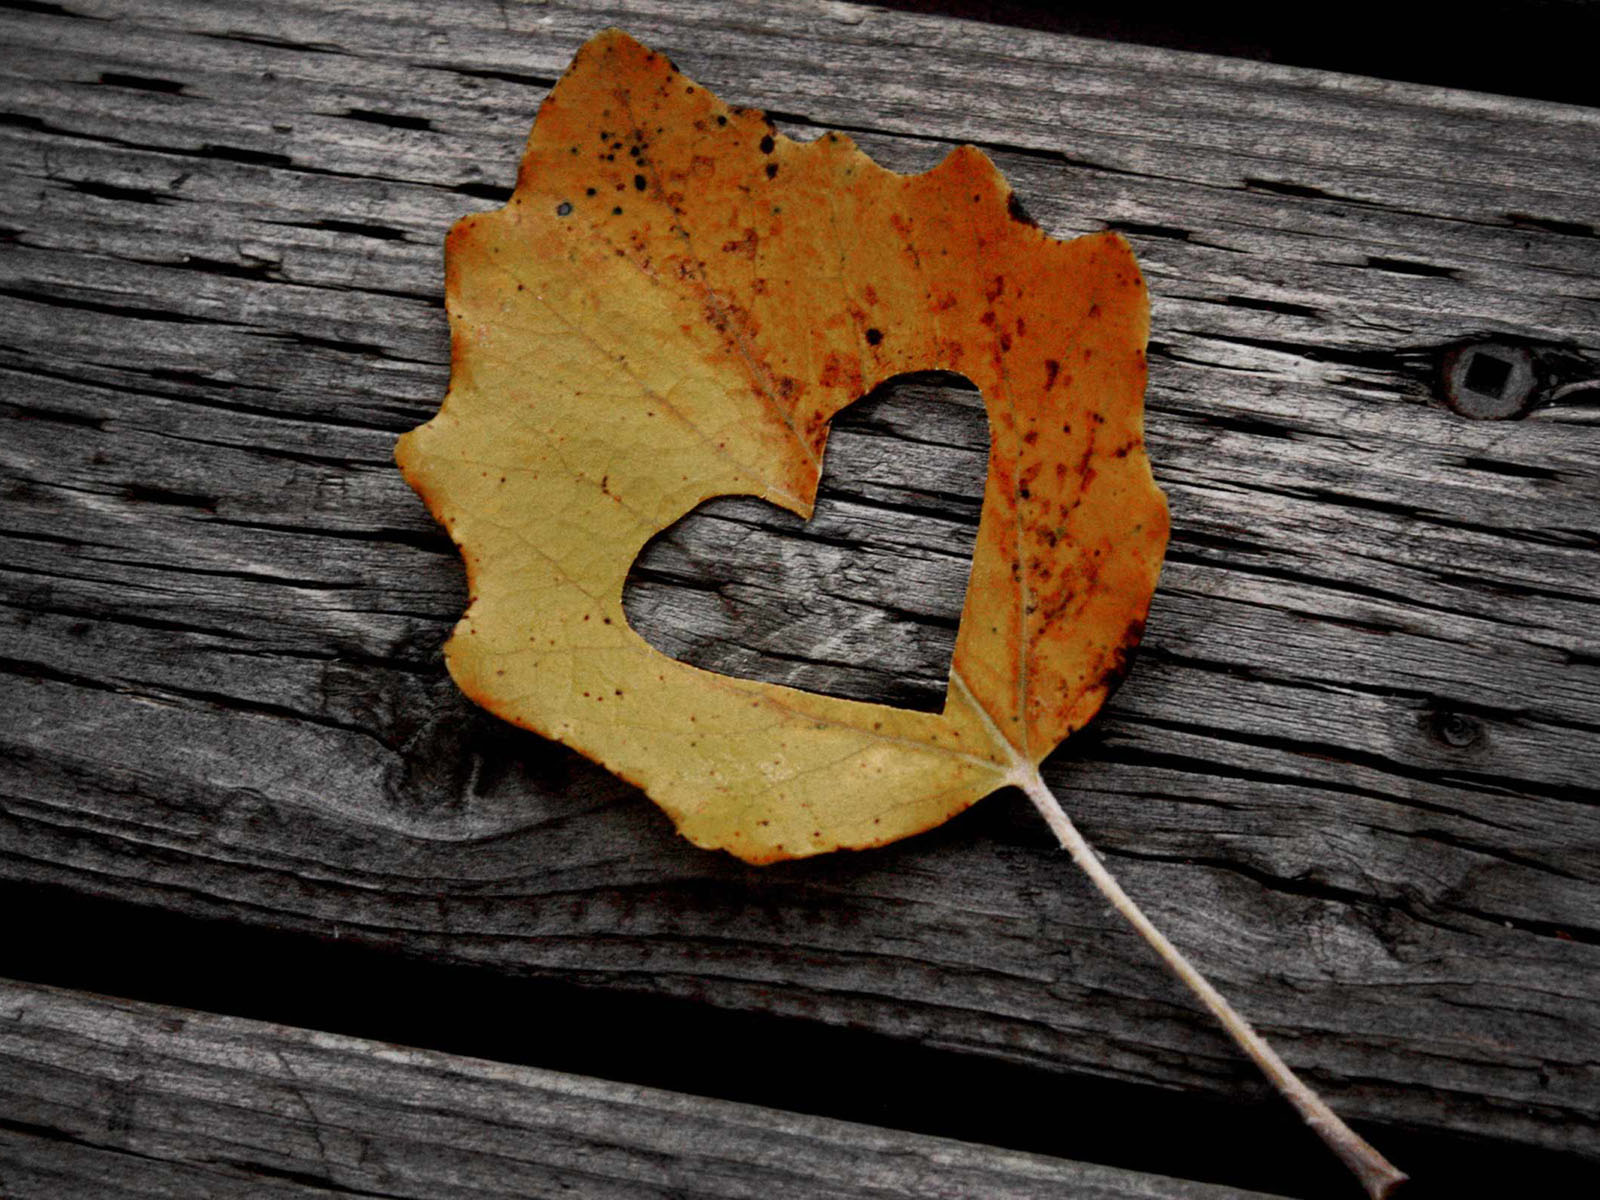 nature wallpapers leaf autumn lovely heart background fall quotes desktop romanticism cool hearts cute enjoy word romantic foi intuitie para